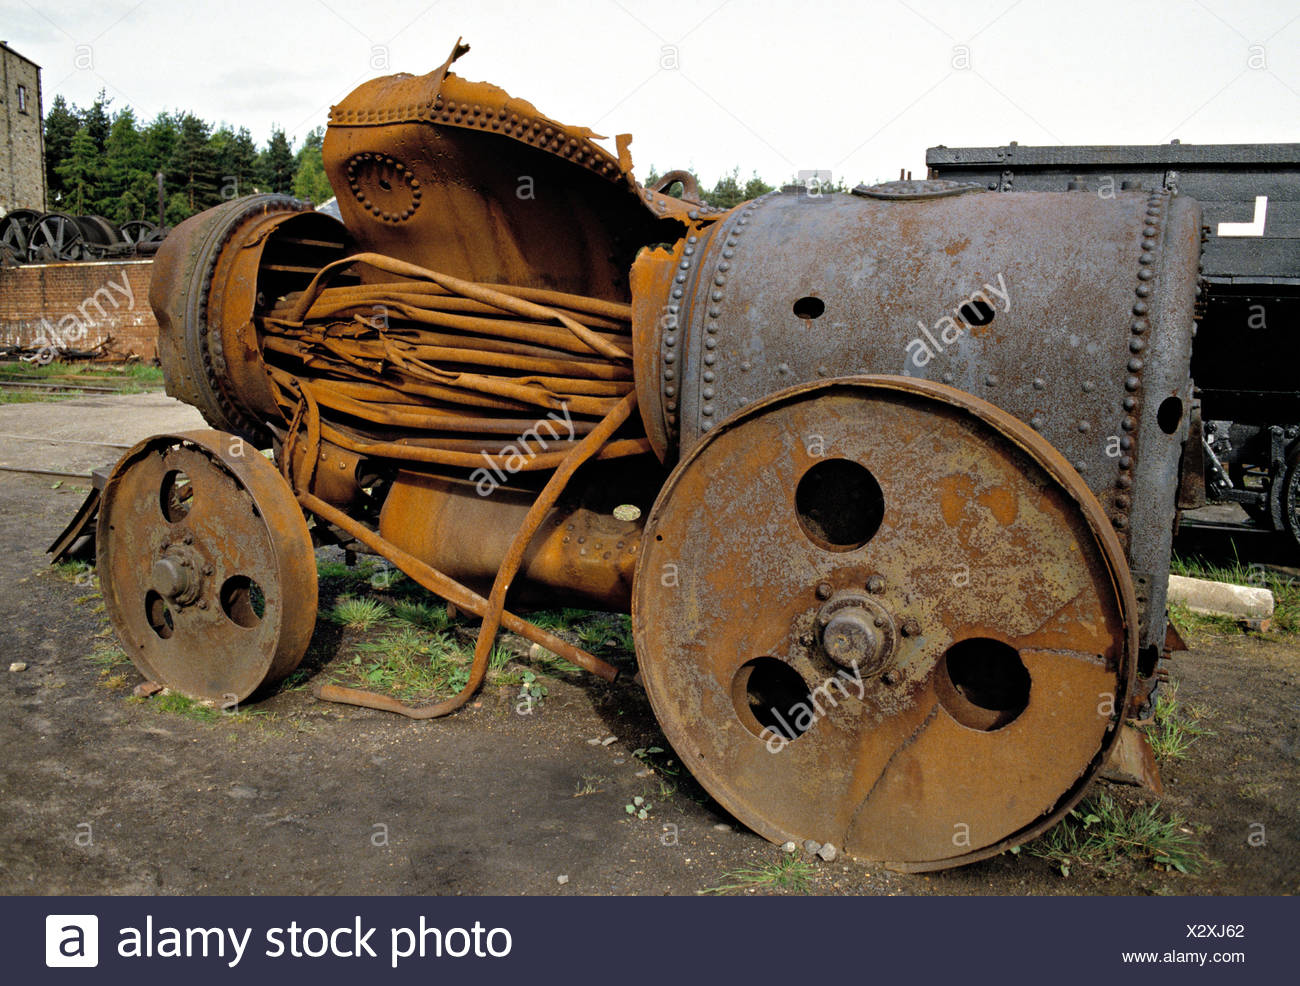 Burst boiler on steam traction engine, United Kingdom Stock Photo ...